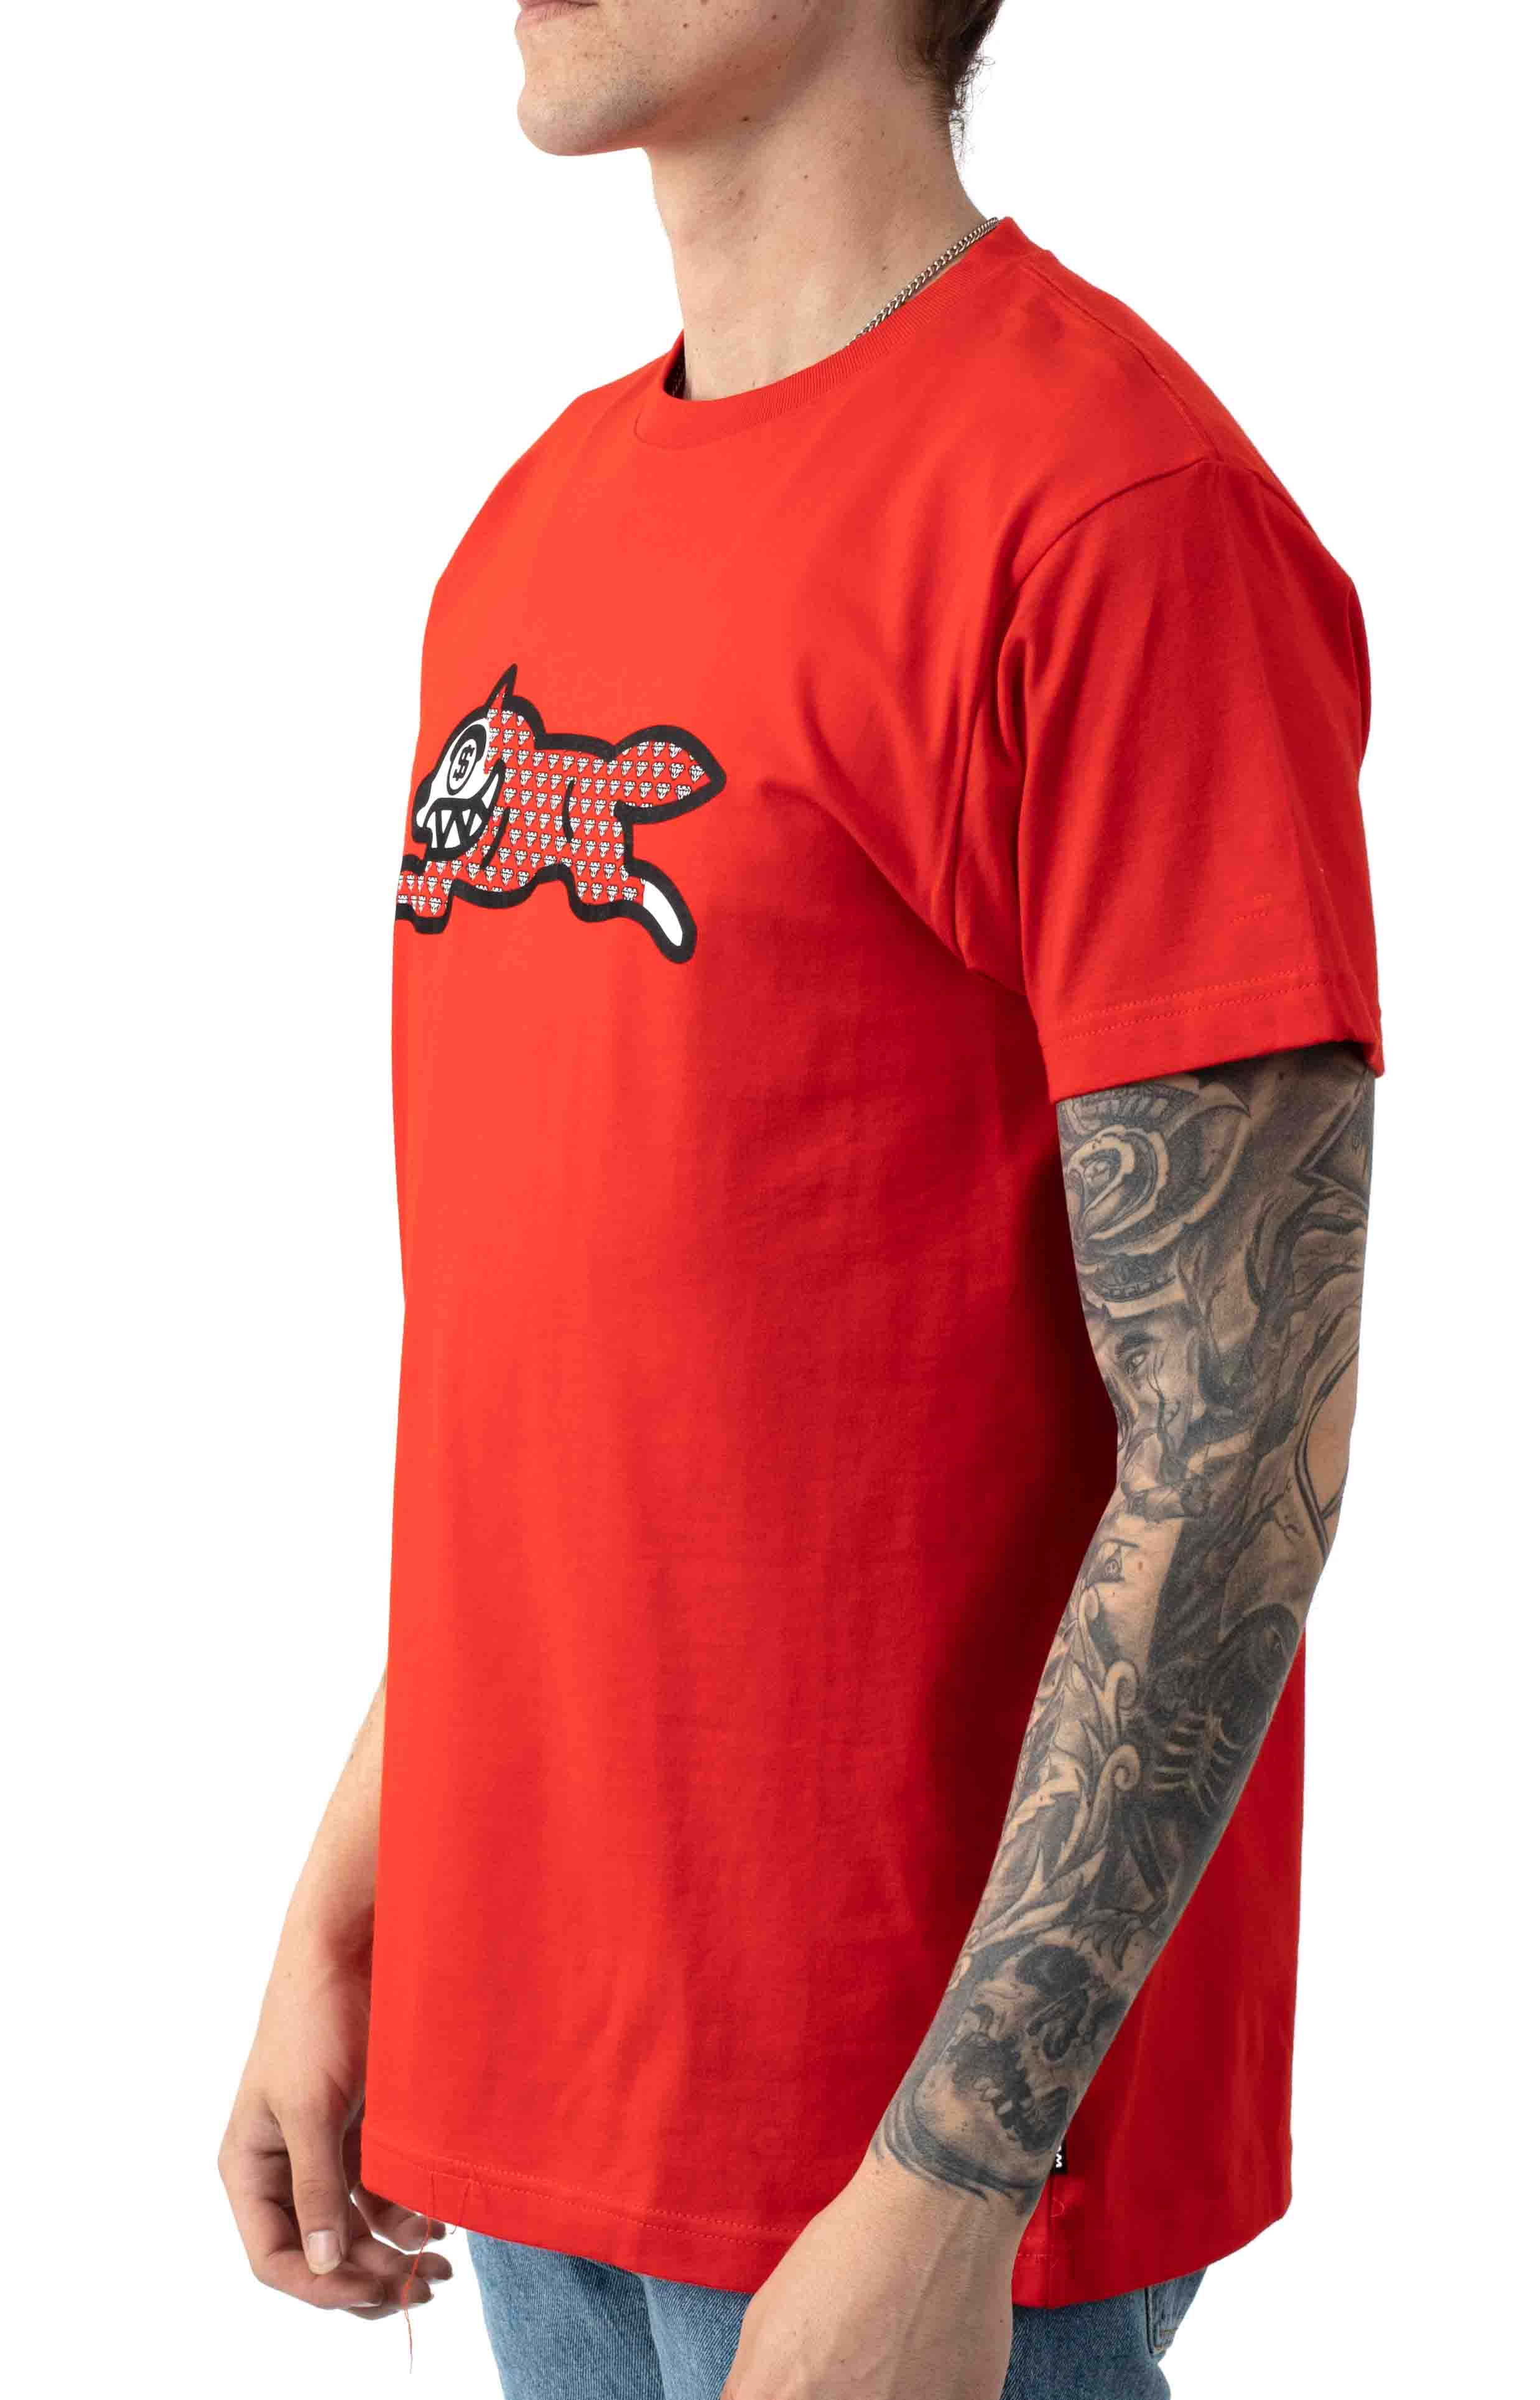 Fossil Fuel T-Shirt - Fiery Red 2